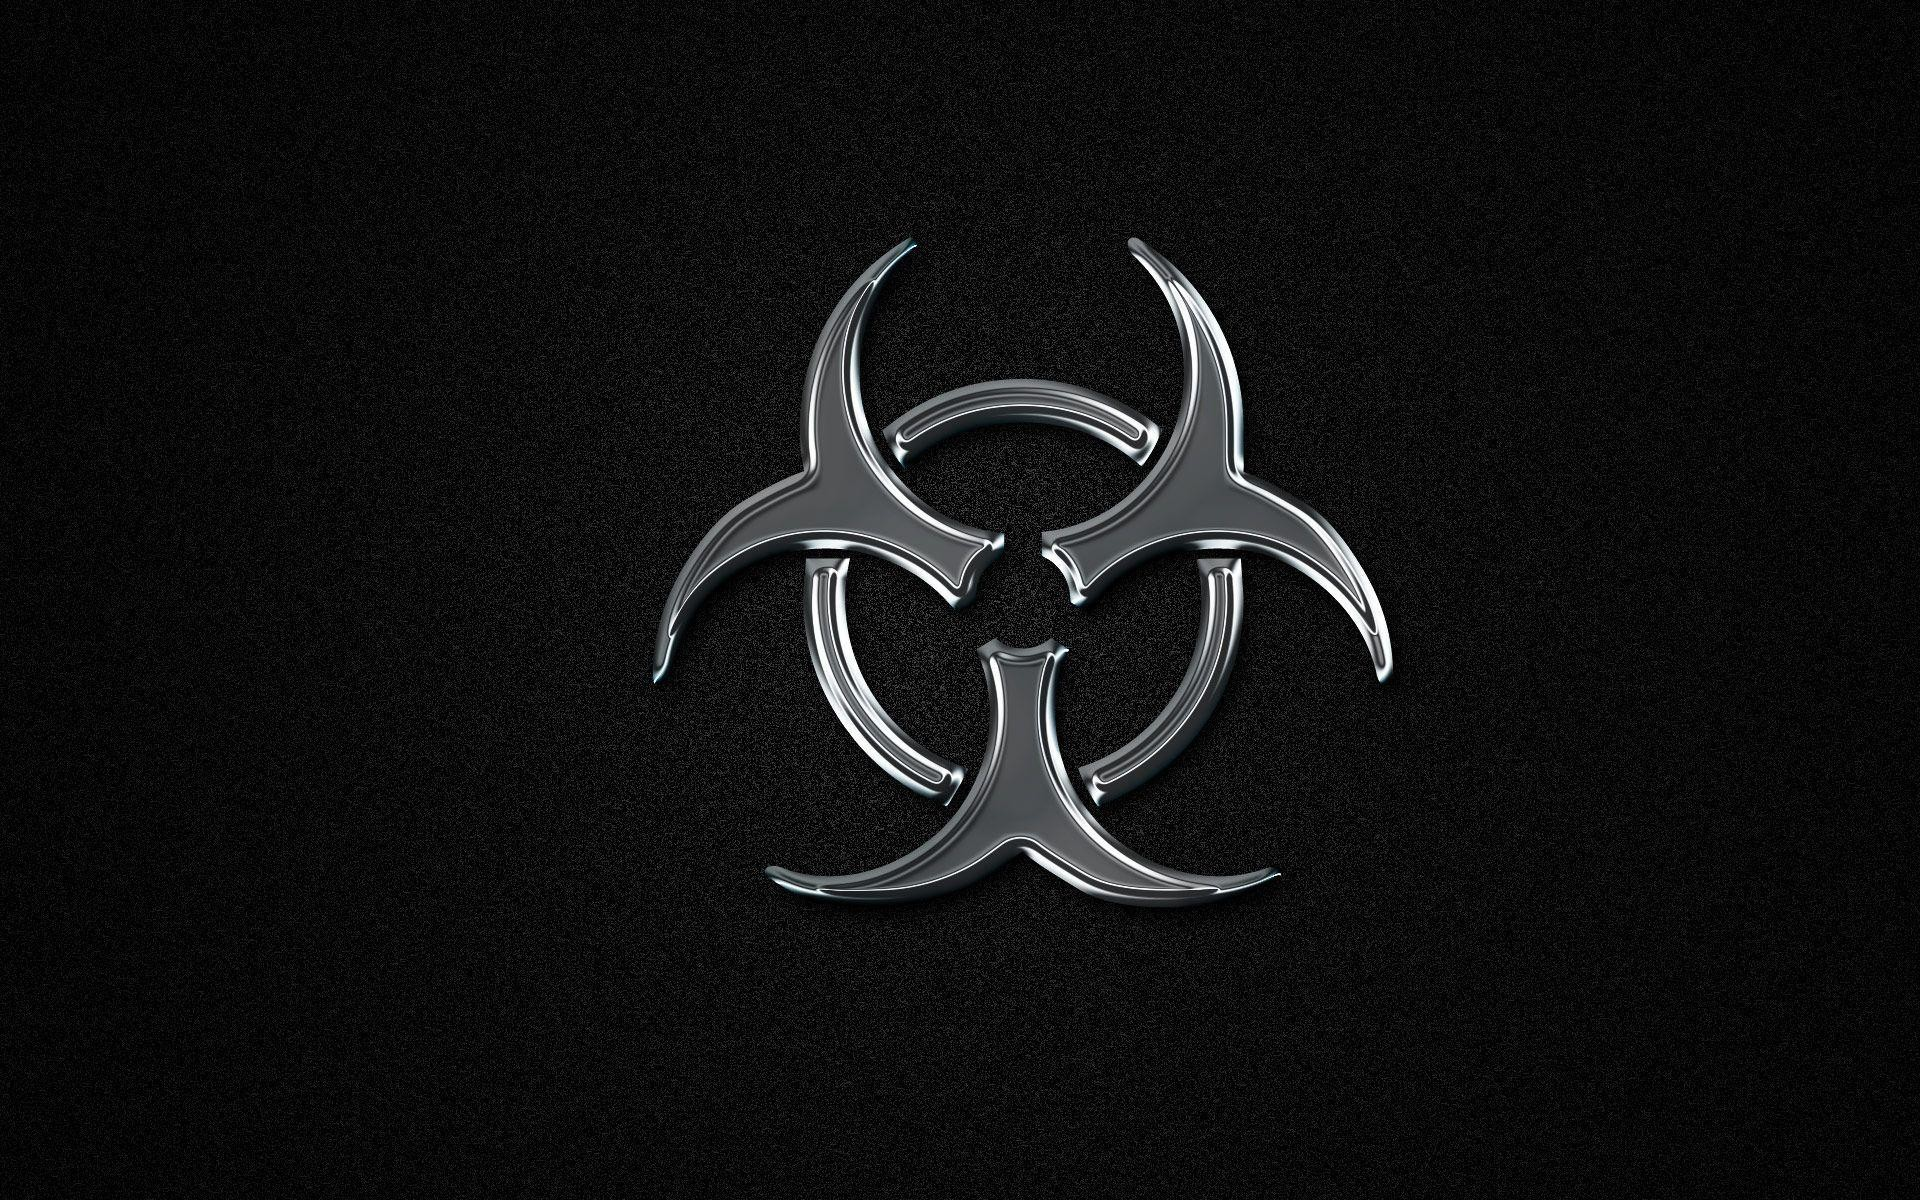 1920x1200 Biohazard Symbol Wallpapers and Background